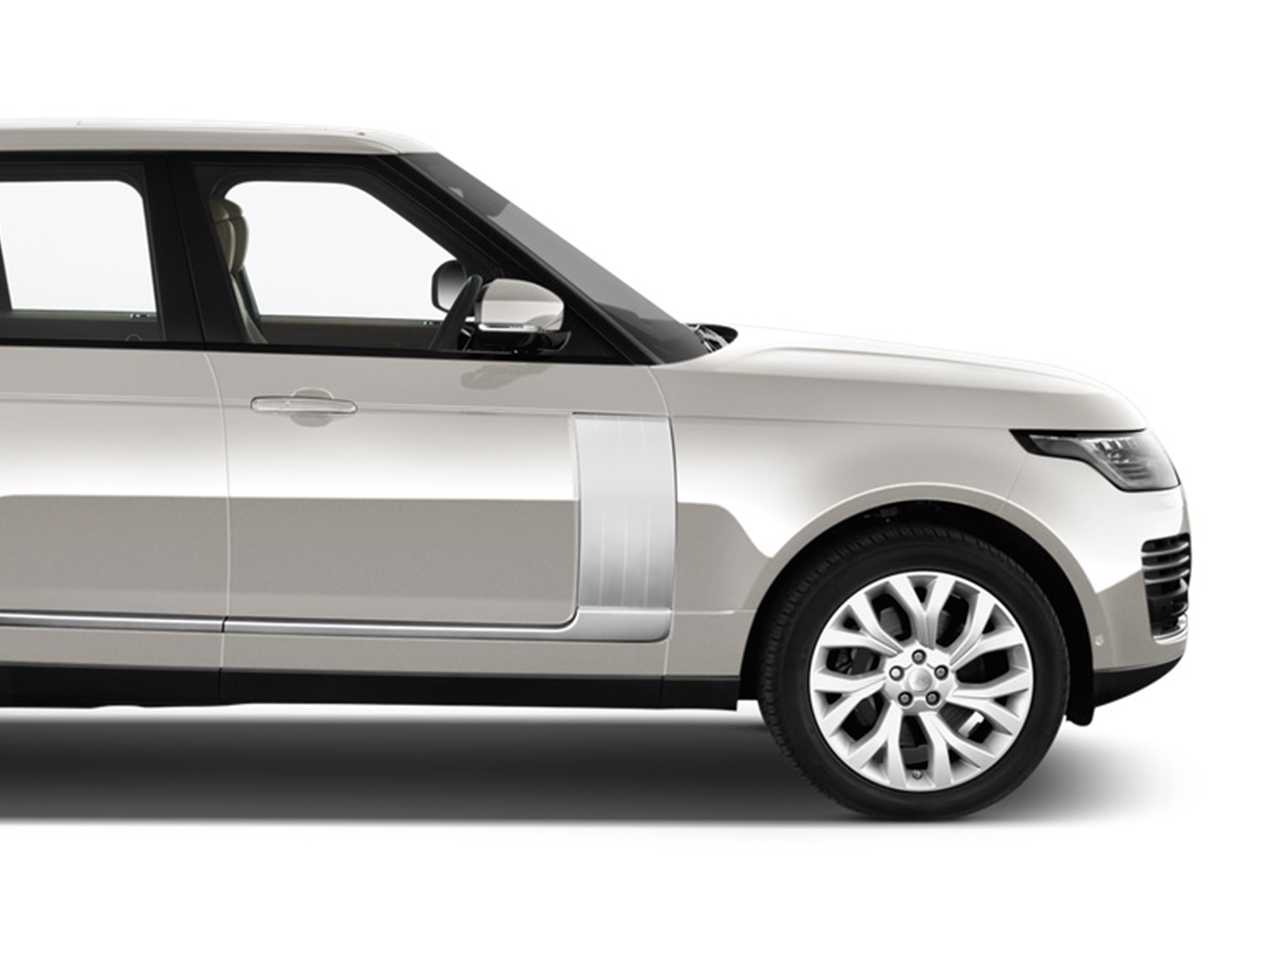 Range Rover Vogue SE 3.0, V6 car for hire